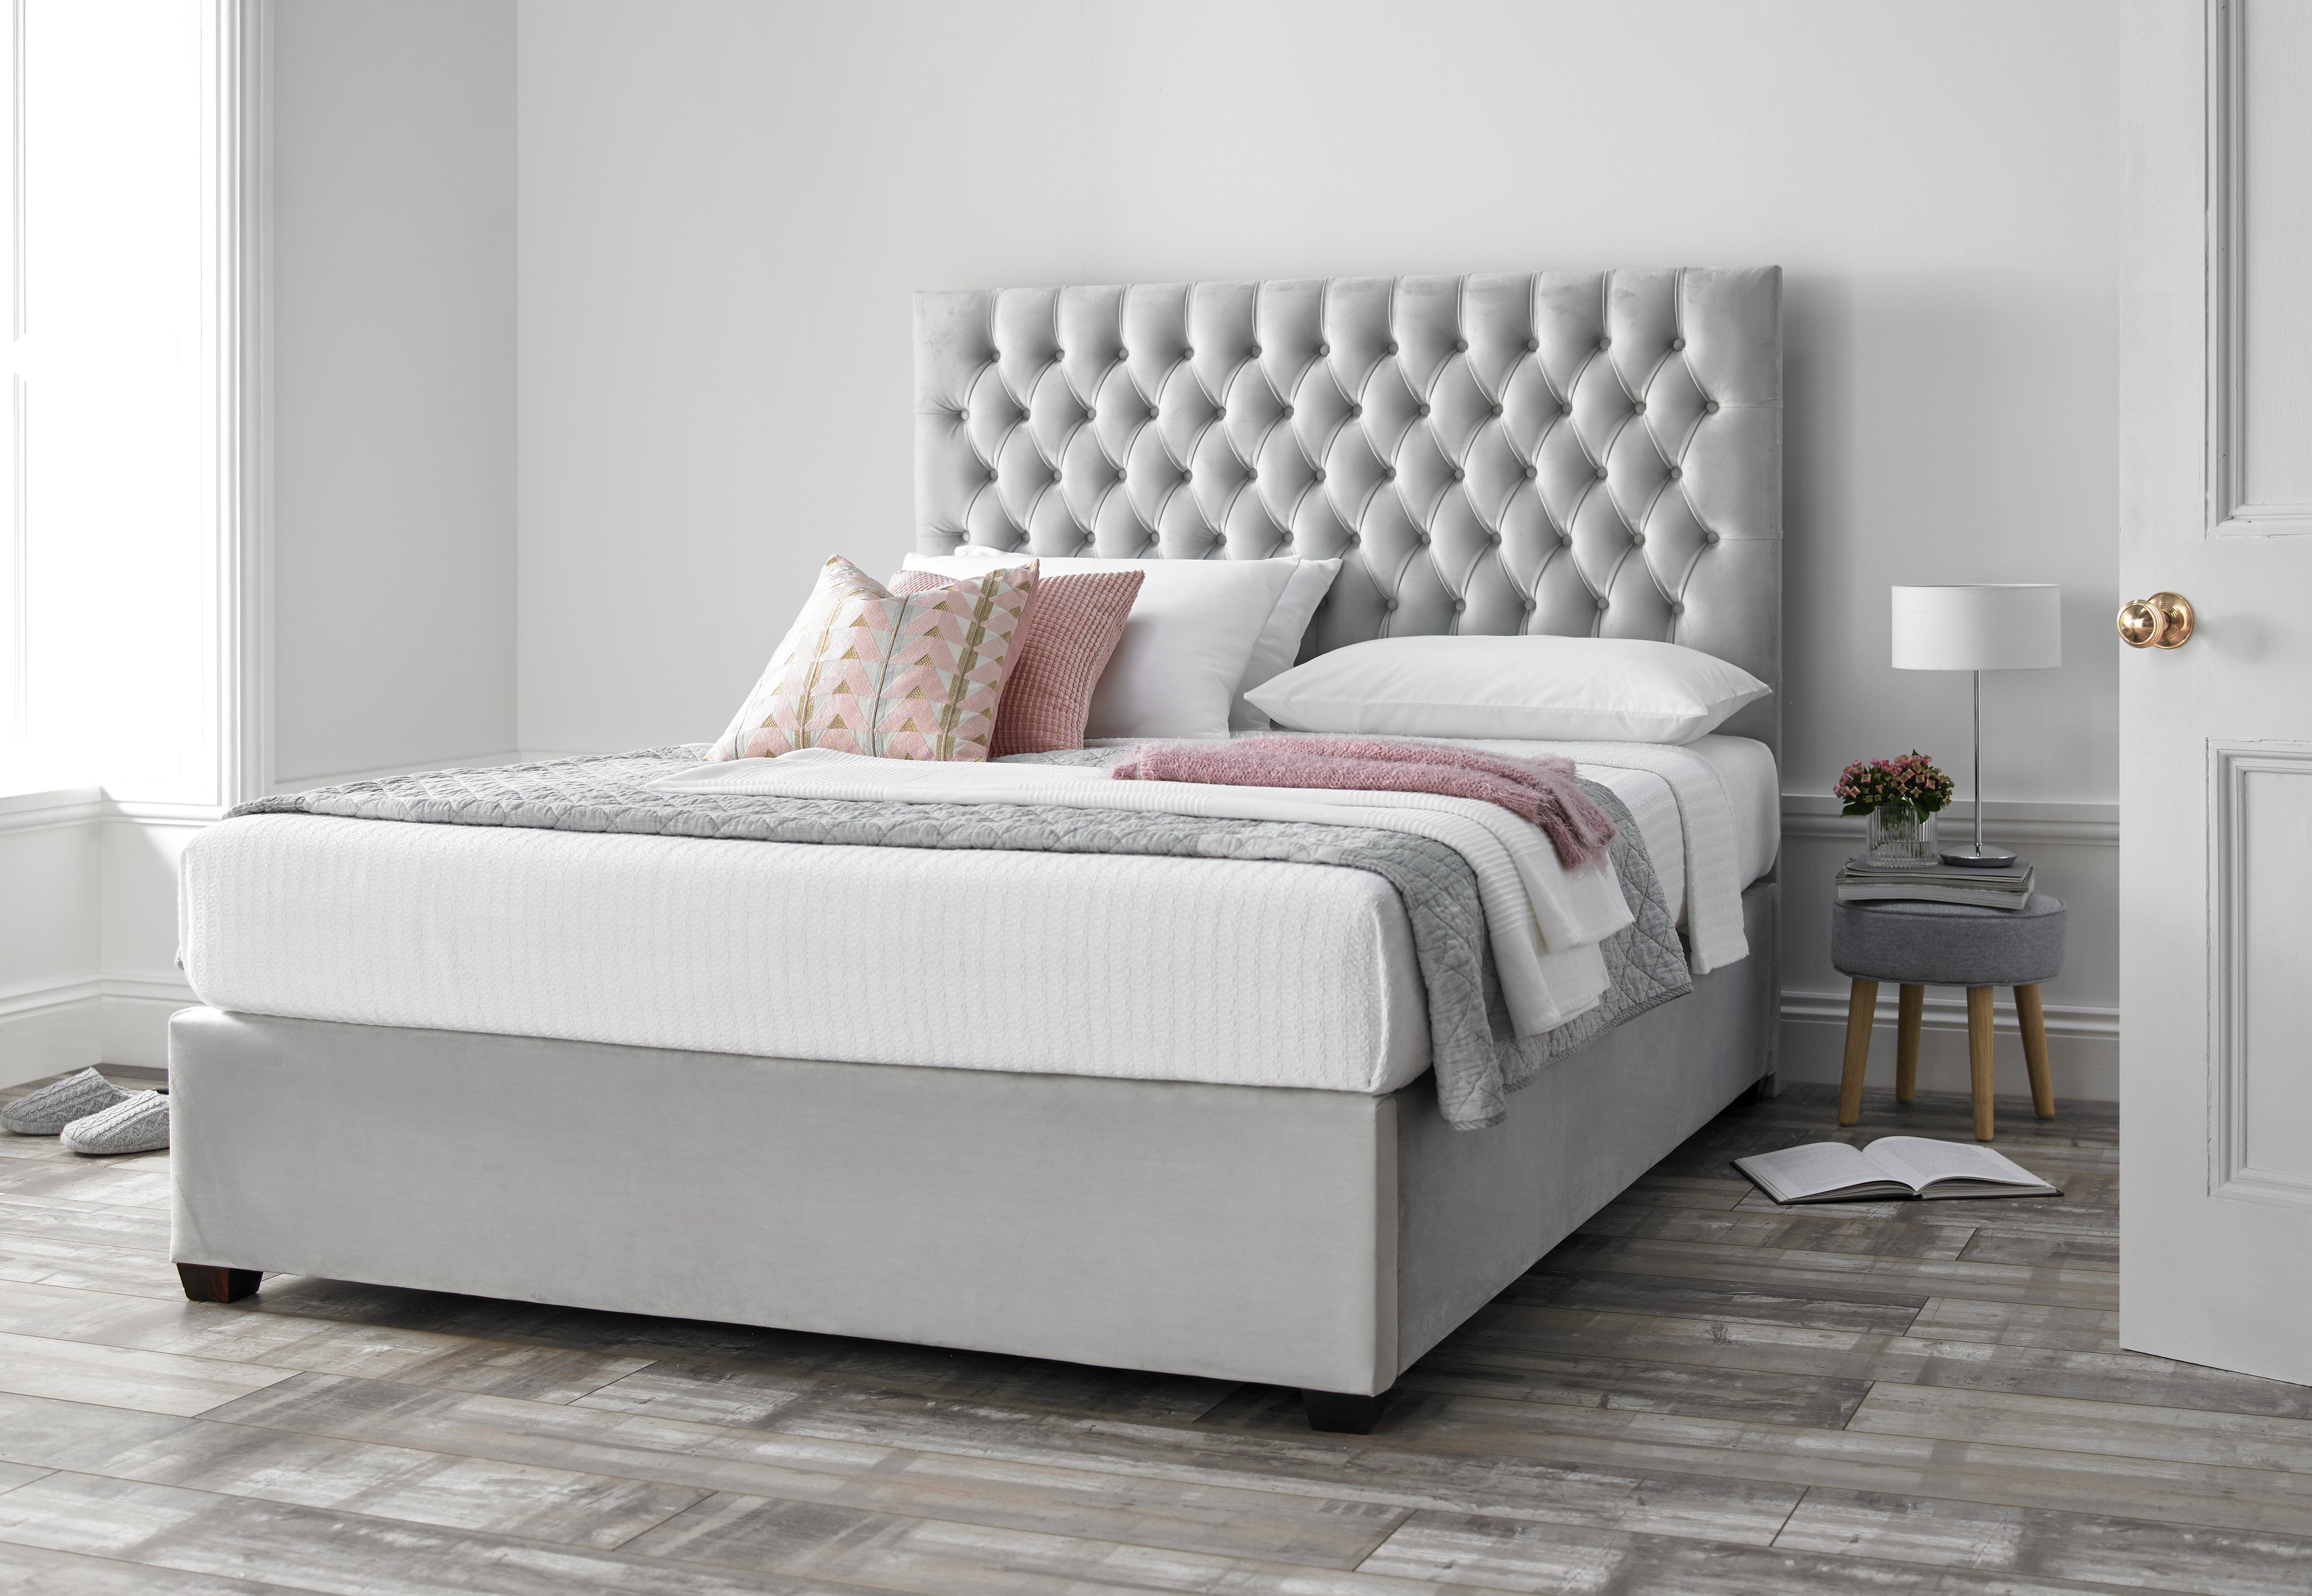 We Love Our New Upholstered Soft Grey Bed The Light Soft Grey